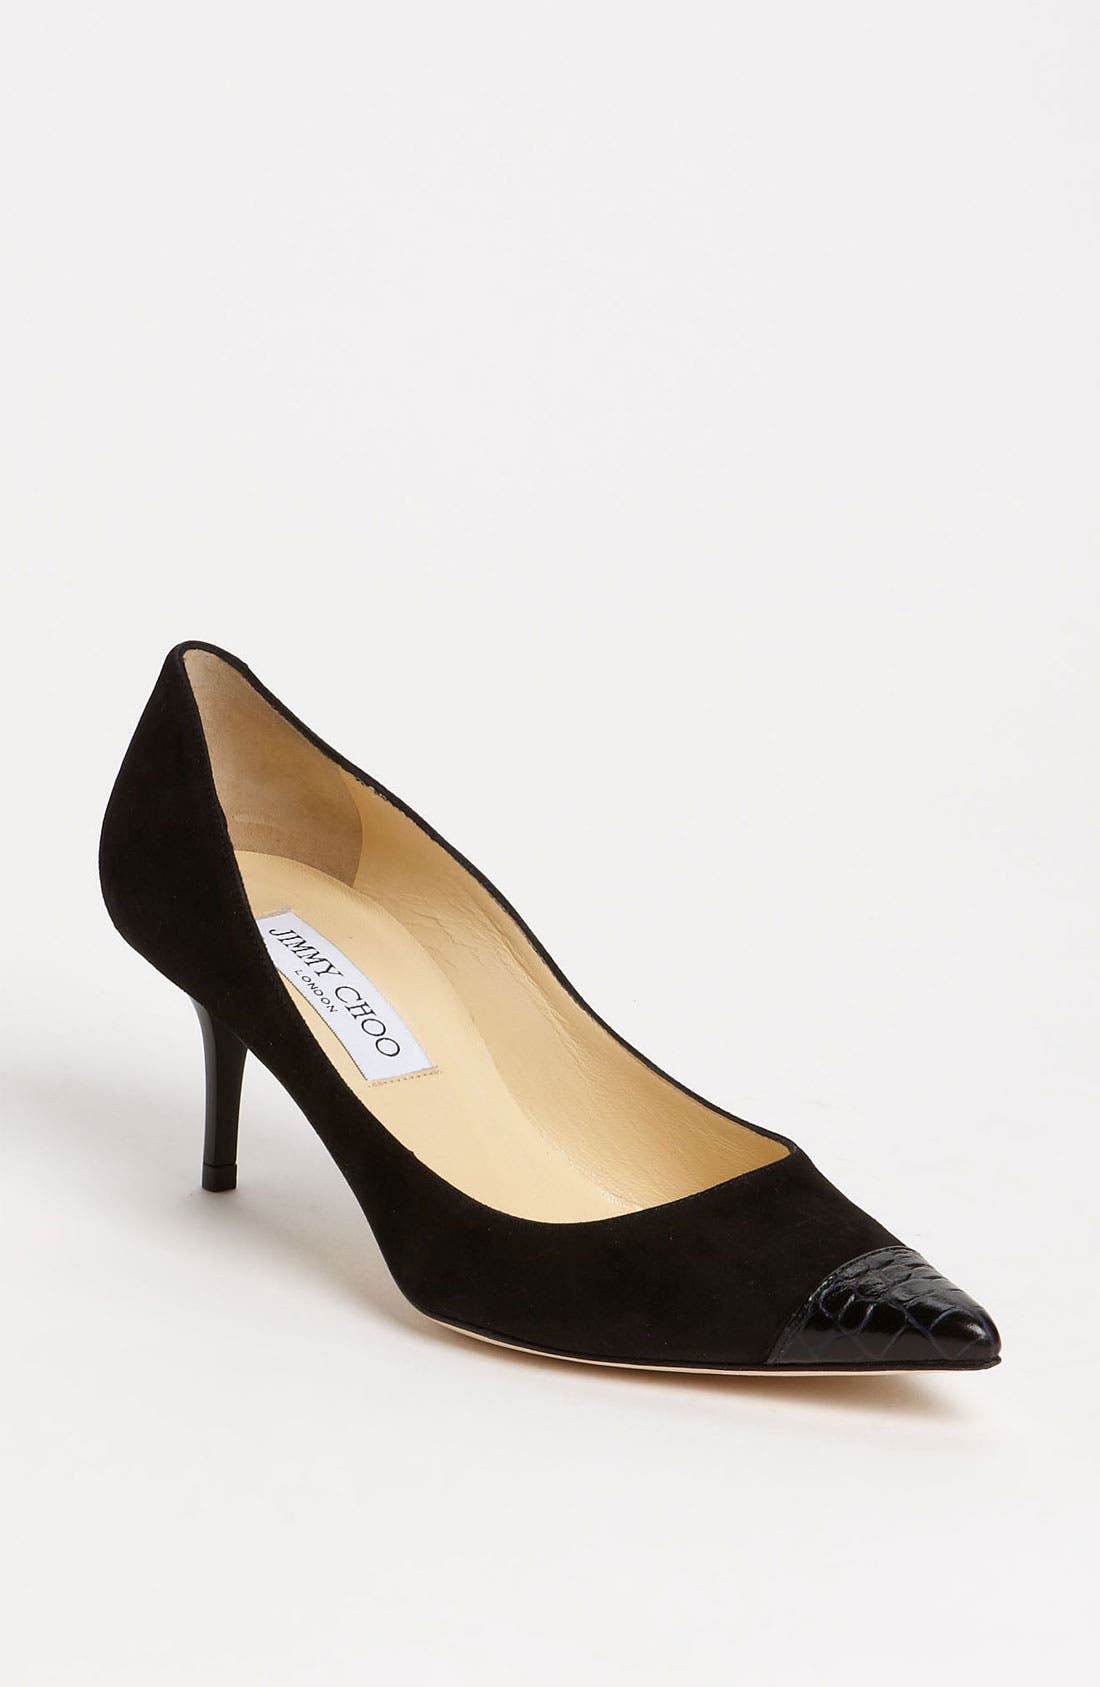 Main Image - Jimmy Choo 'Anvil' Pump